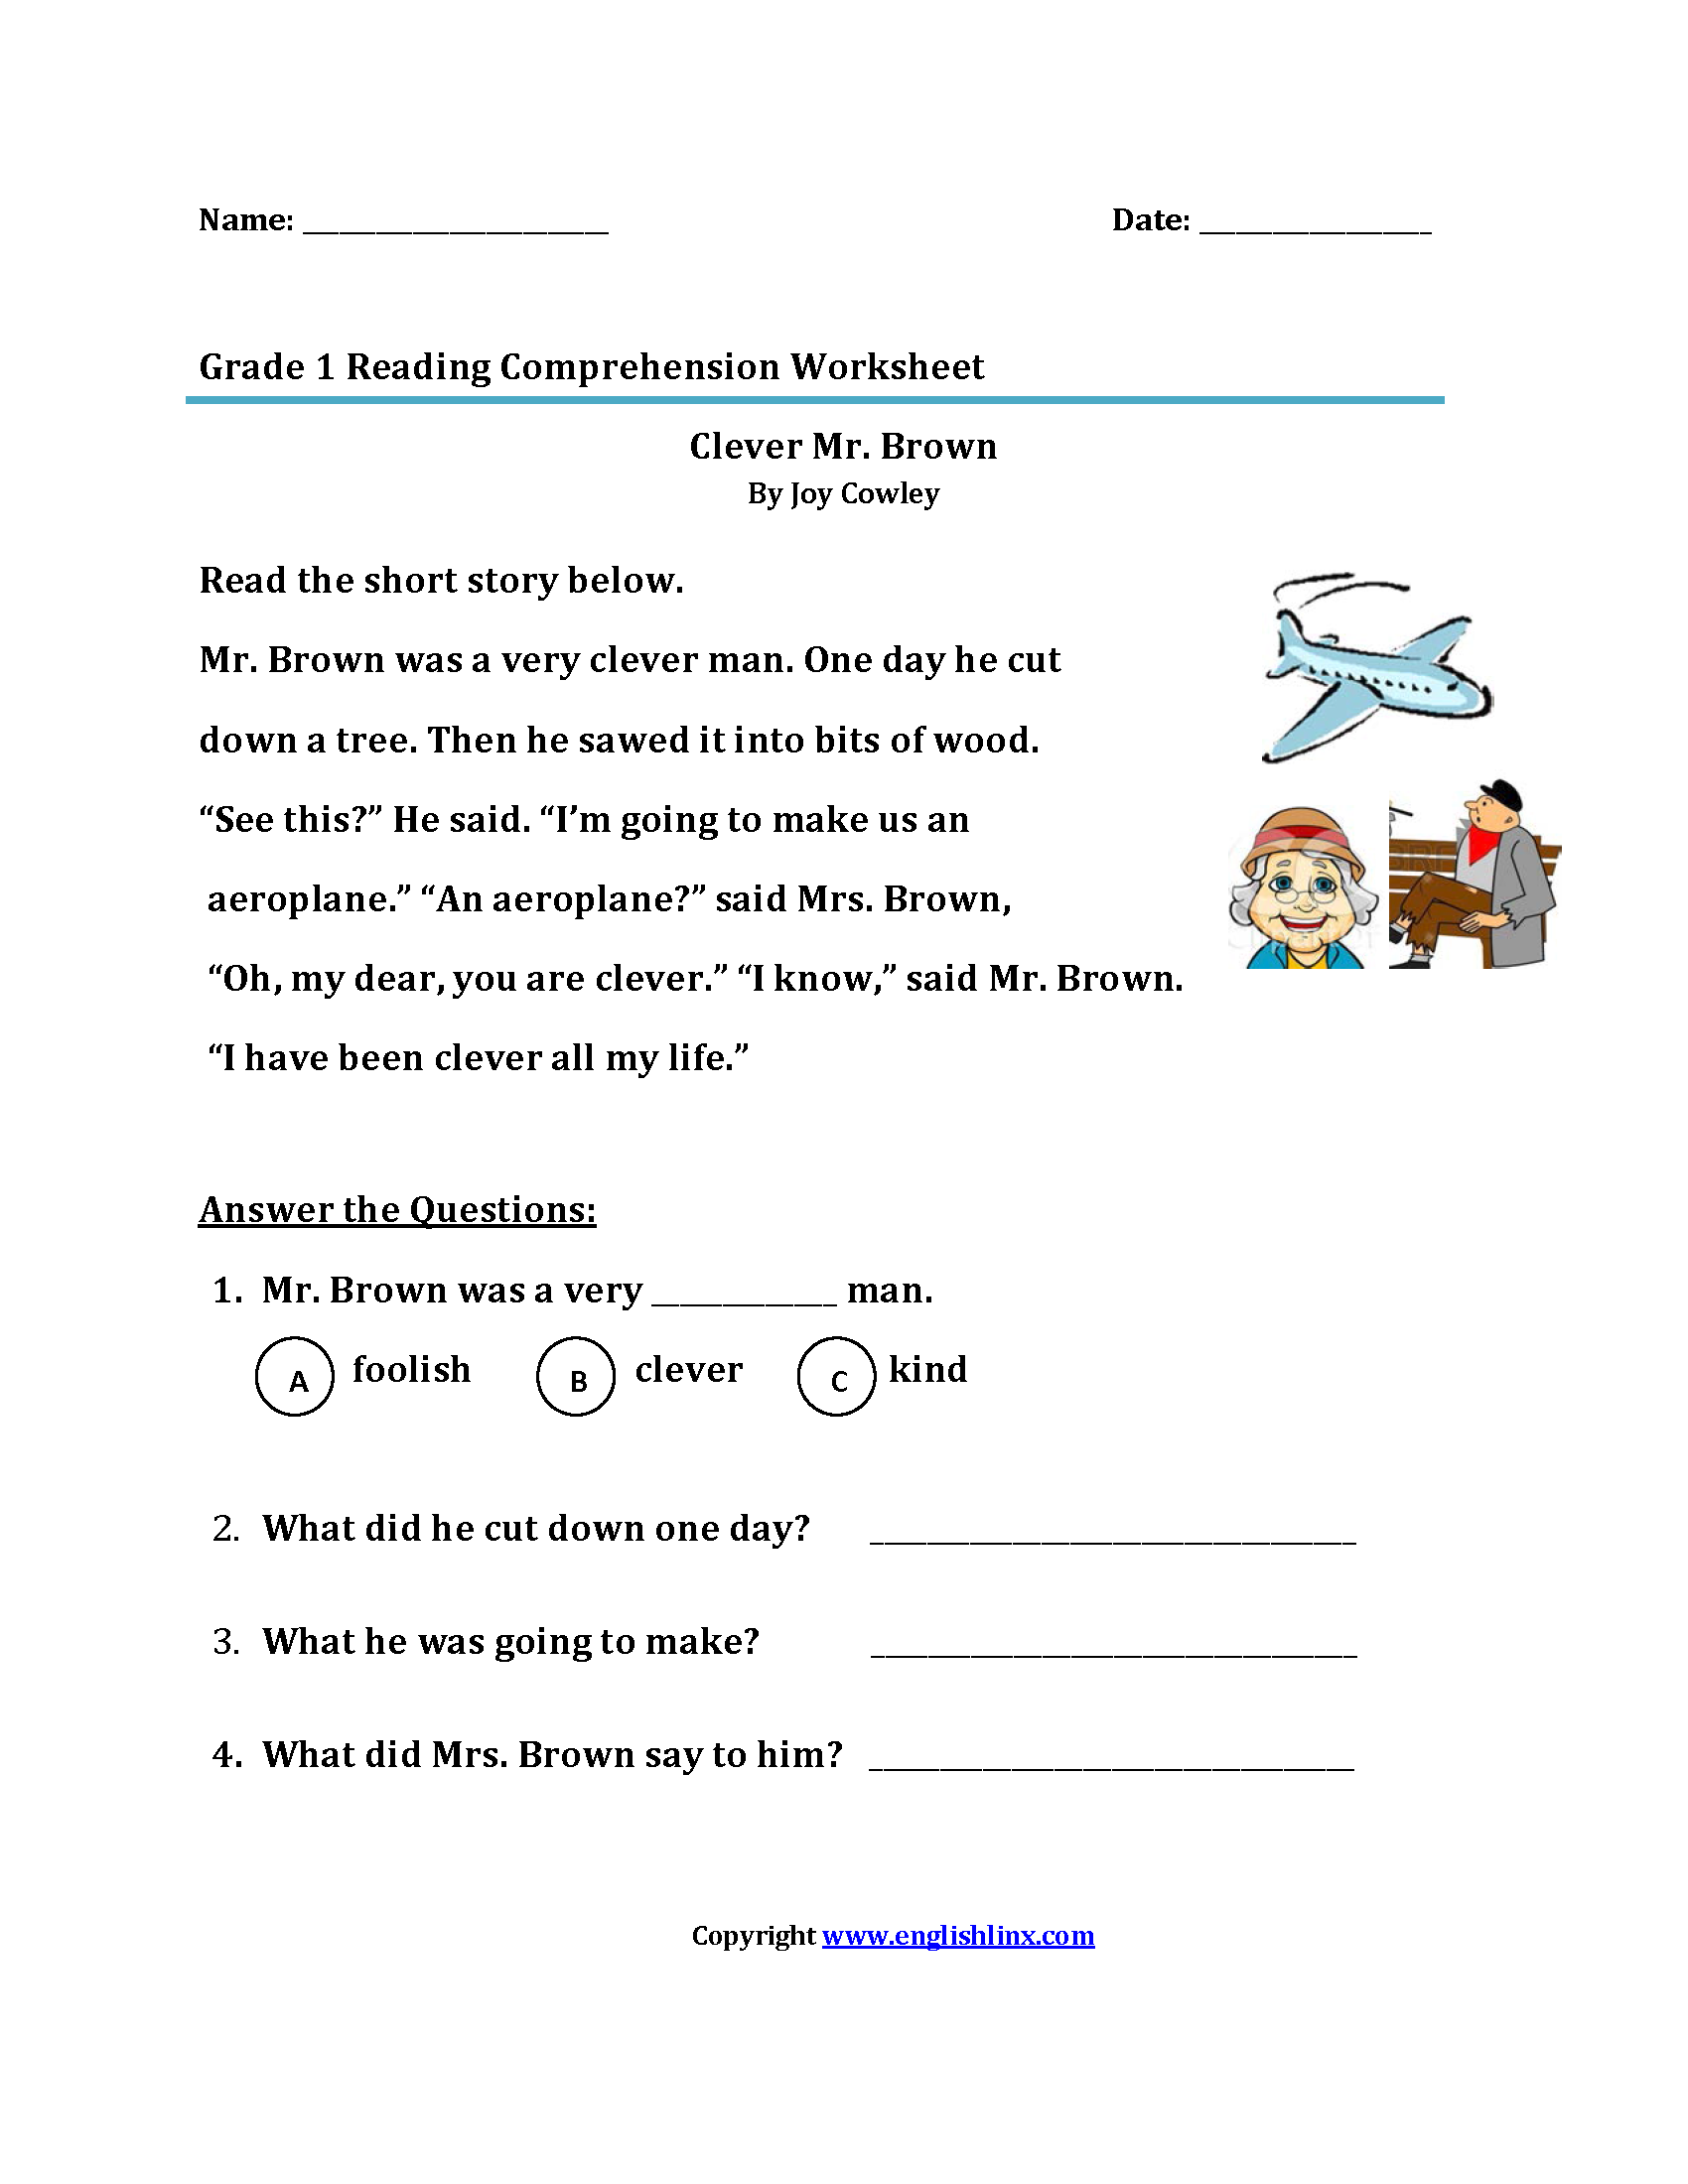 - Clever Mr. BrownFirst Grade Reading Worksheets